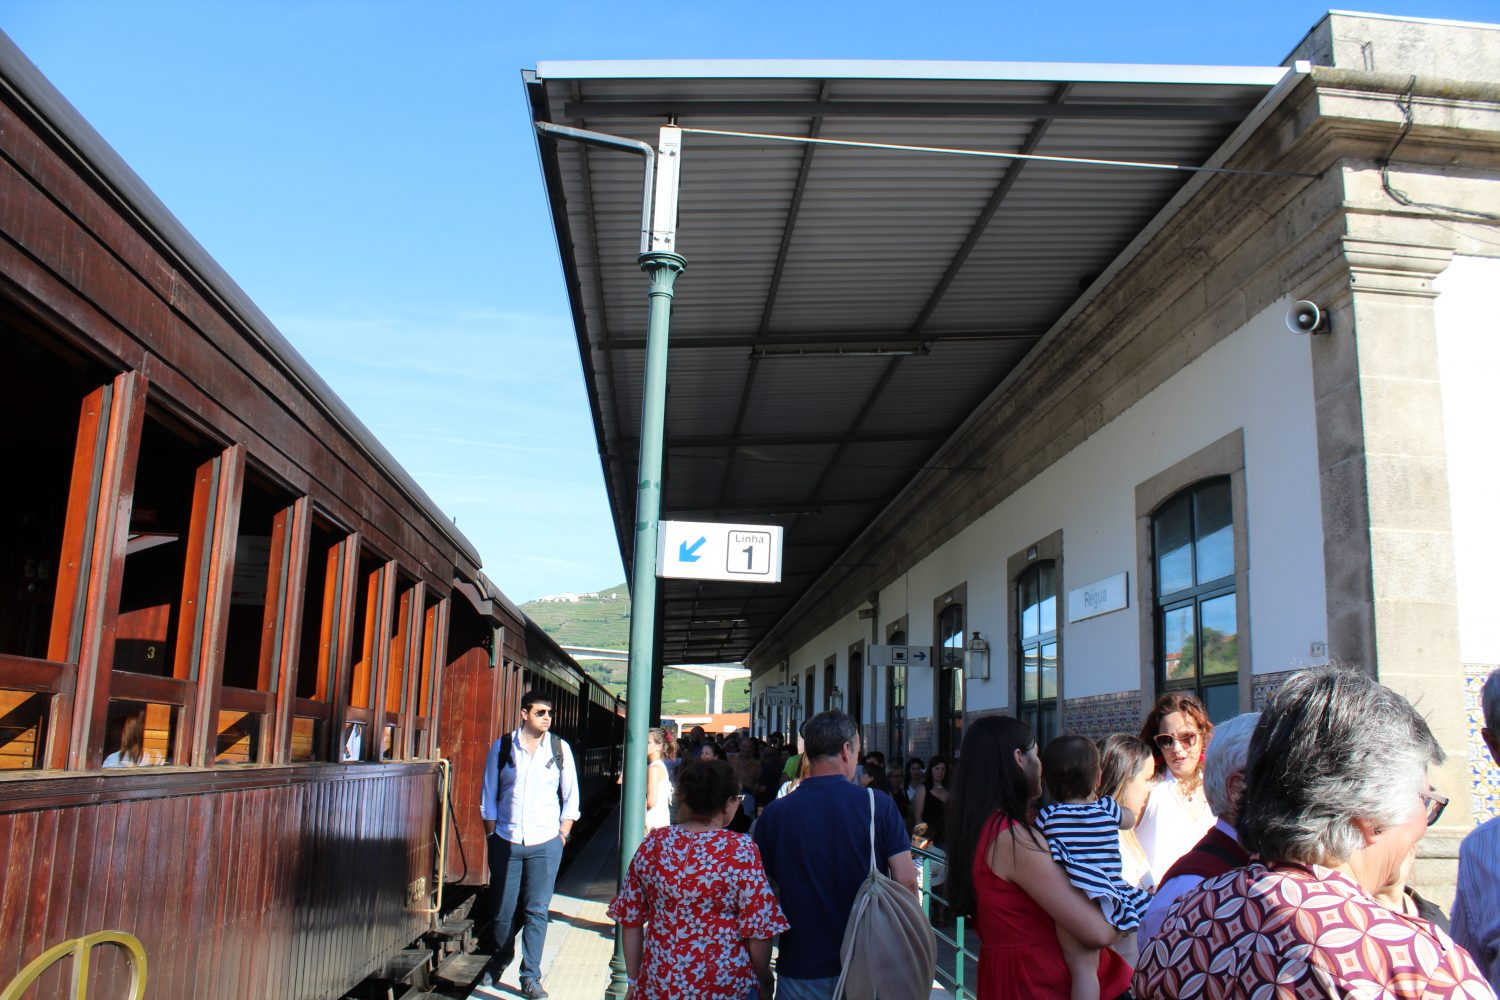 Regua Staion Train